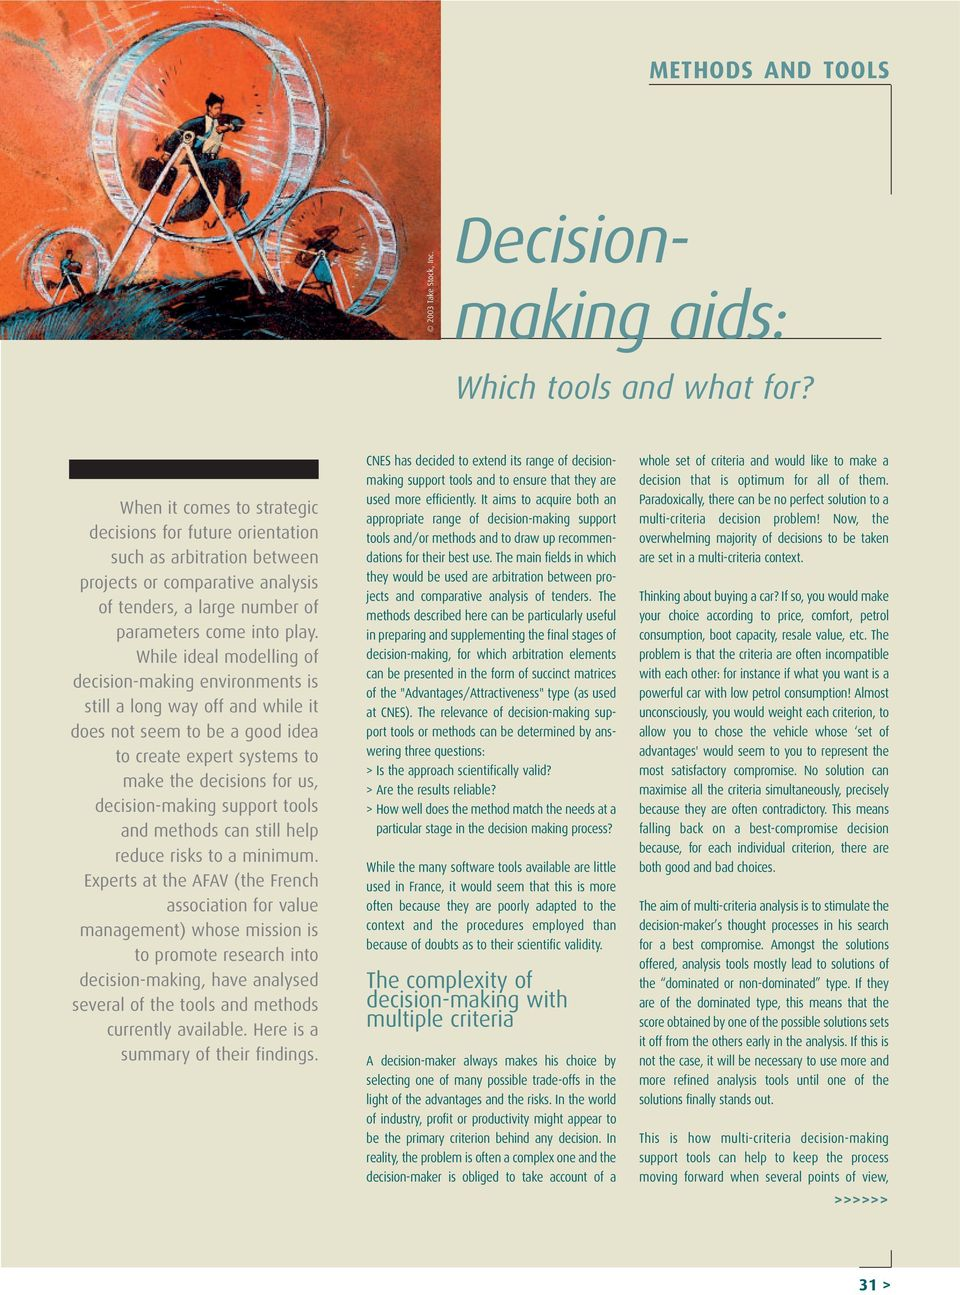 While ideal modelling of decision-making environments is still a long way off and while it does not seem to be a good idea to create expert systems to make the decisions for us, decision-making